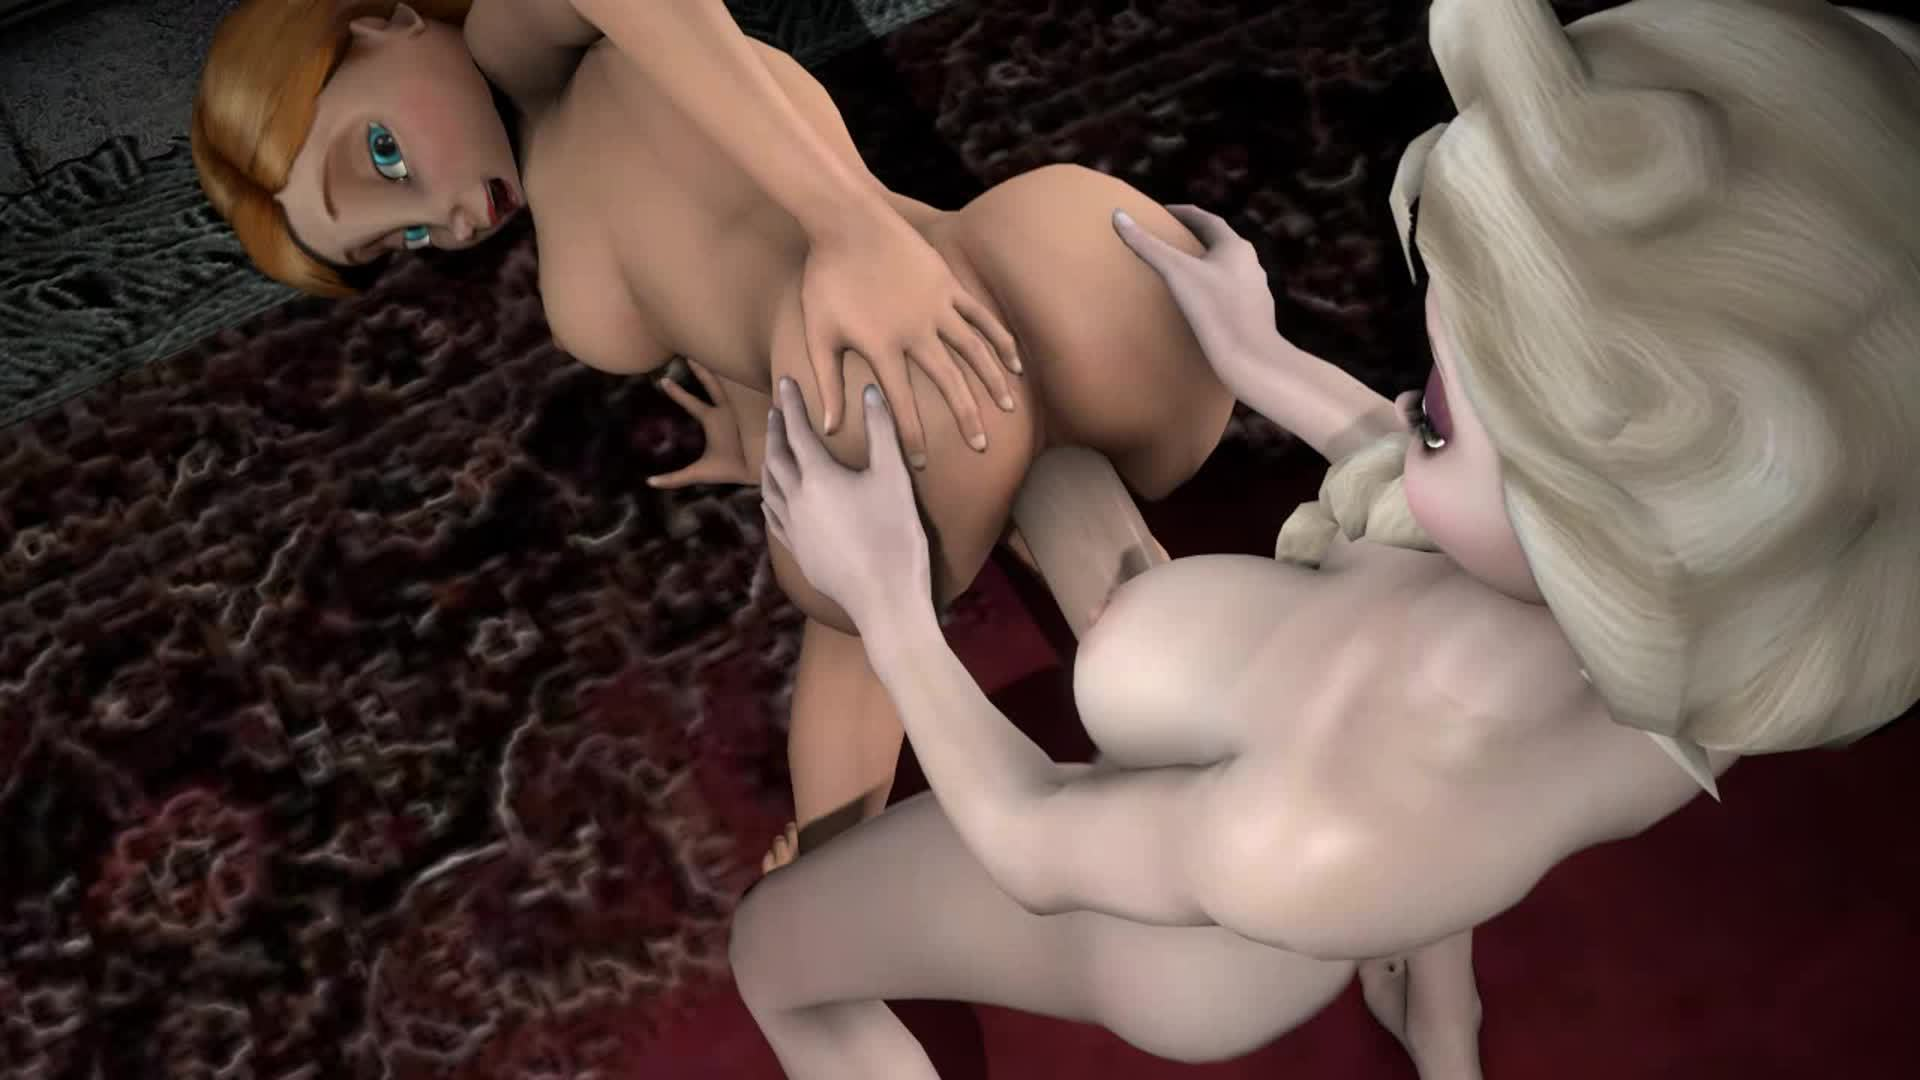 3d anal gifs nude galleries